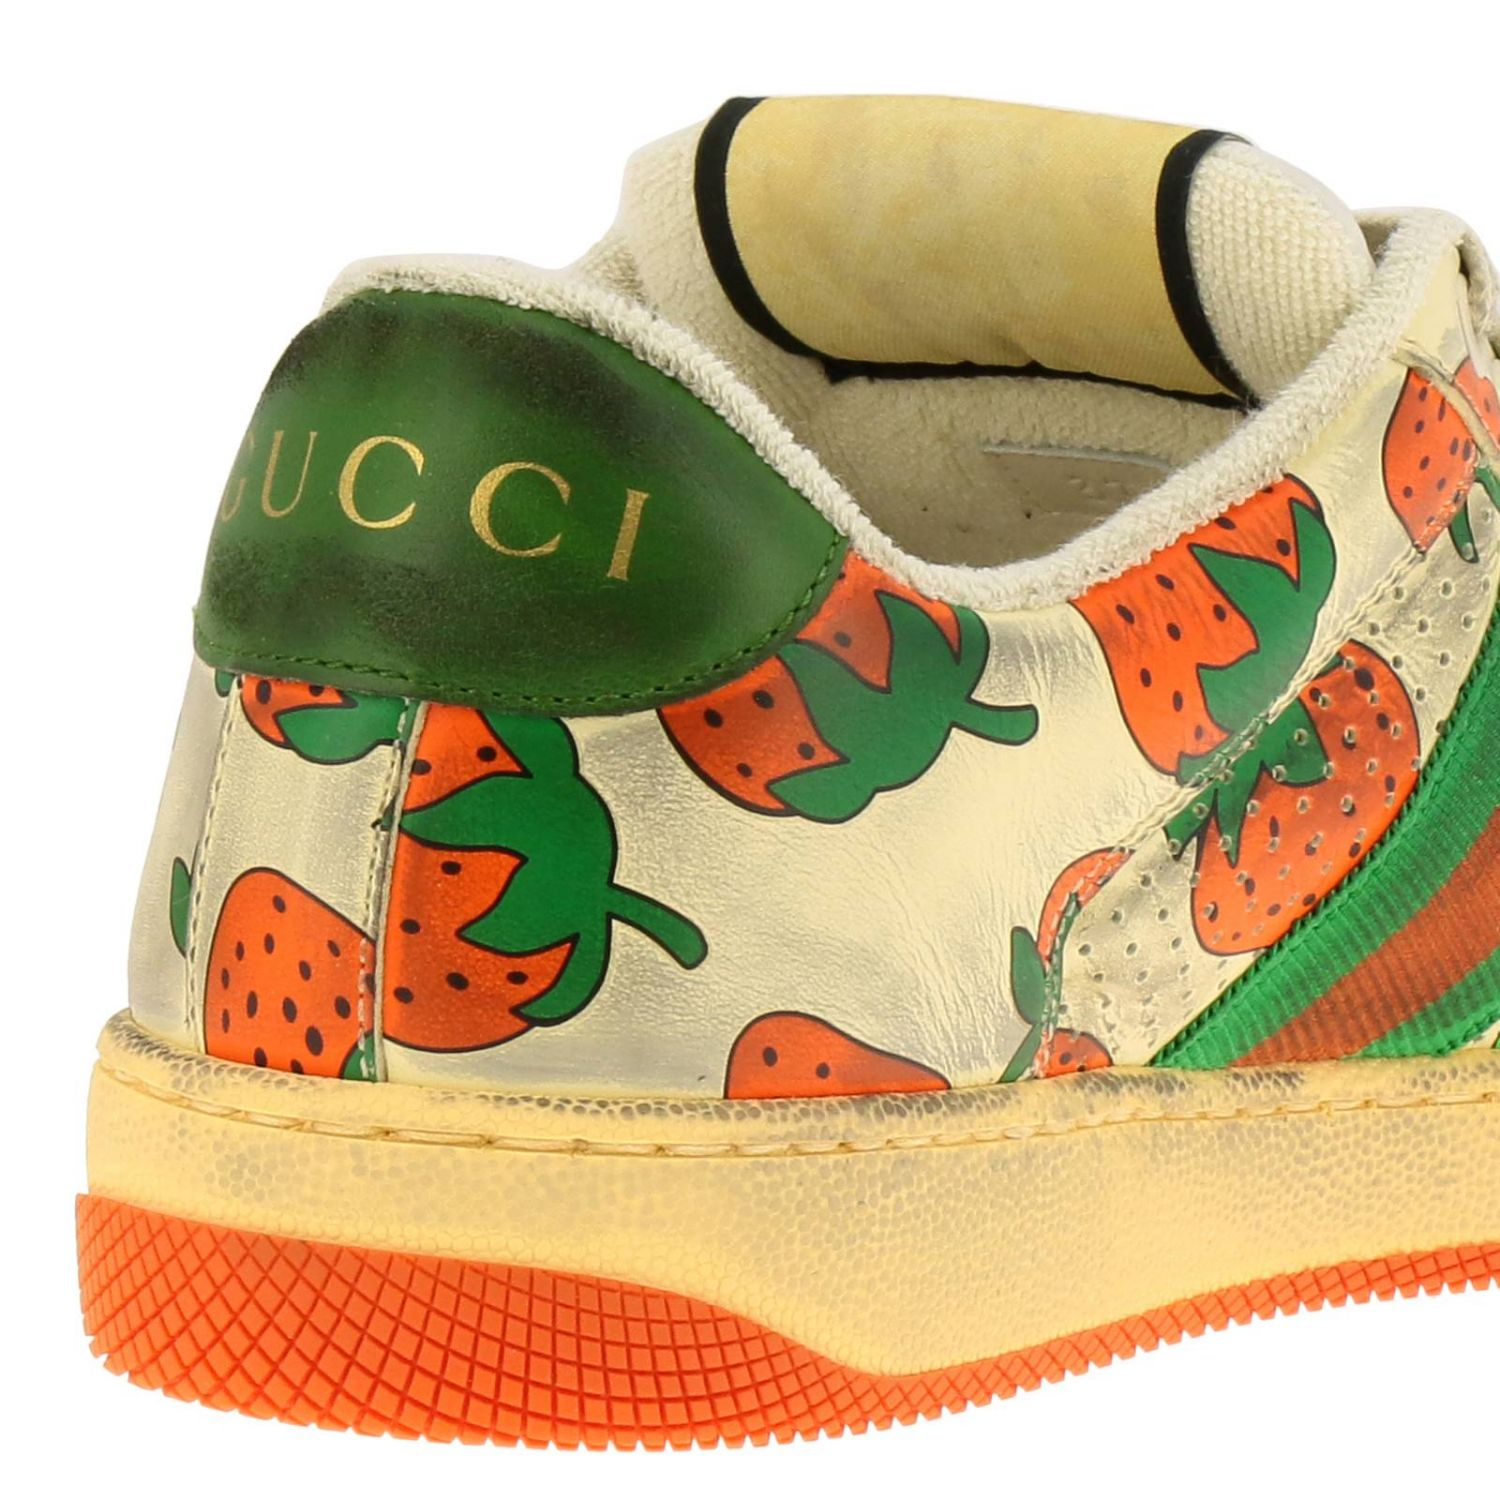 Sneakers Virtus Gucci in pelle vintage con stampa fragole all over bianco 4